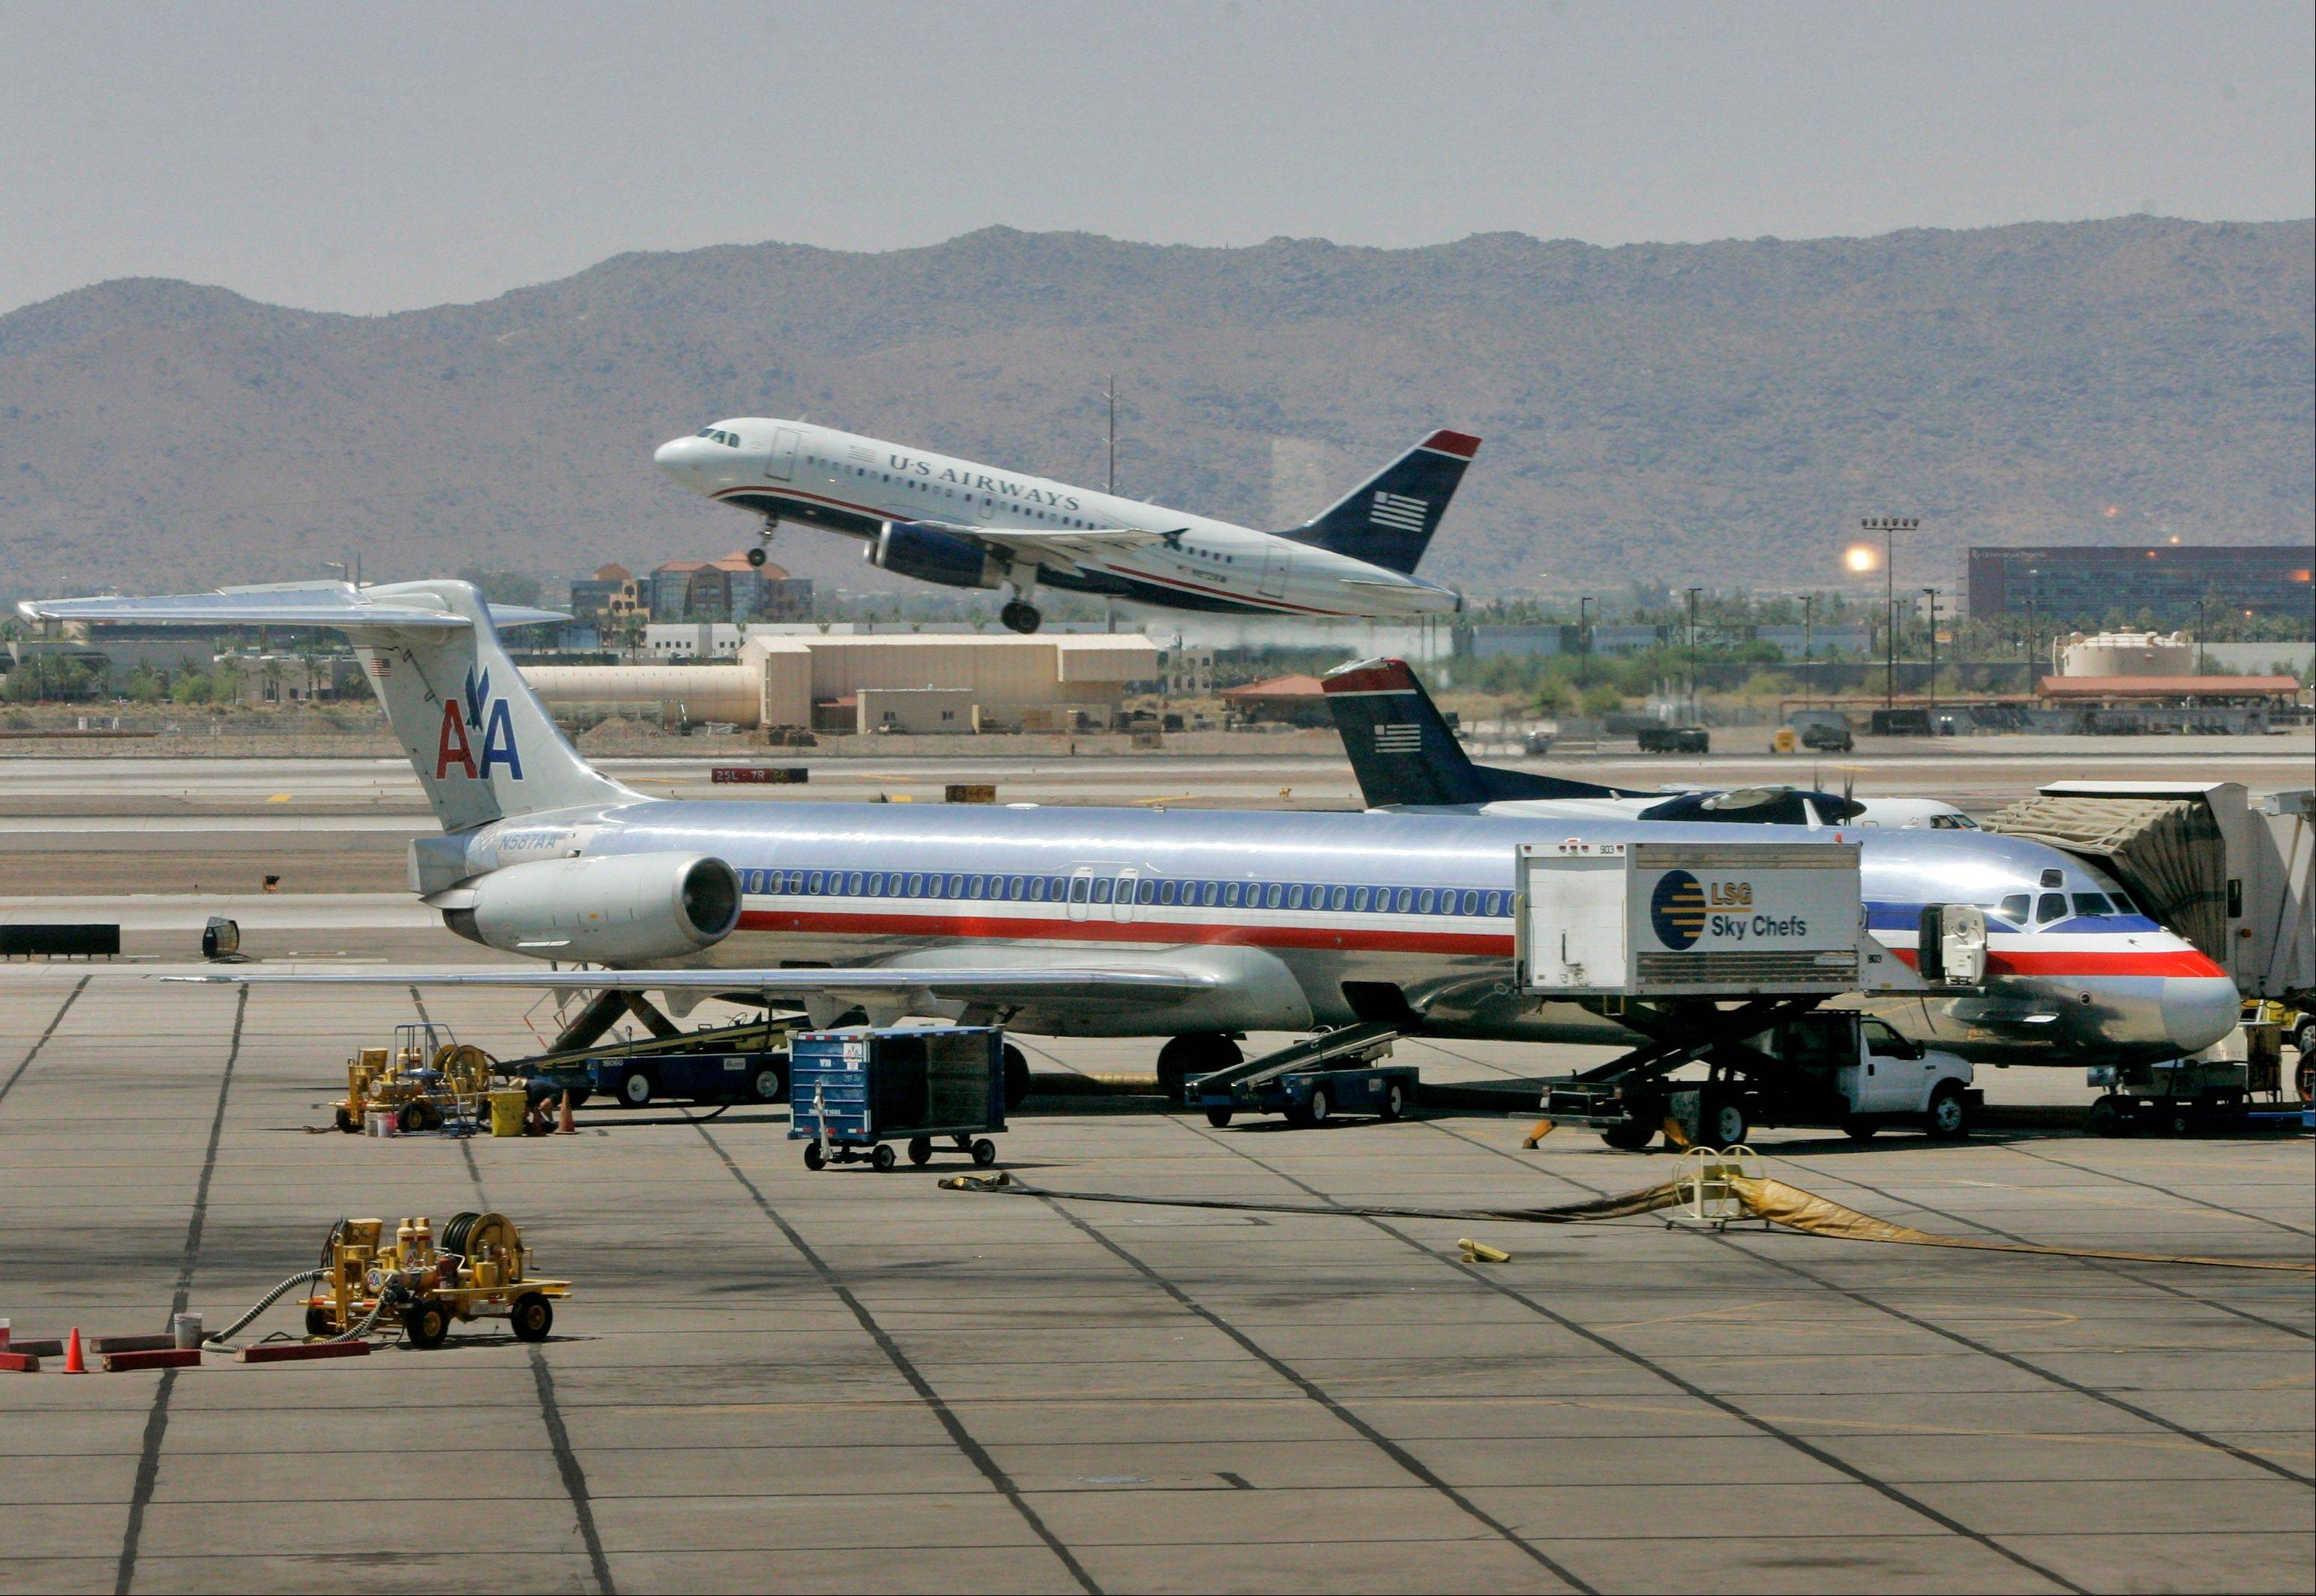 A US Airways jet takes off at Sky Harbor International Airport in Phoenix. US Airways' CEO is getting impatient over the possibile merger between his airlines and American Airlines.